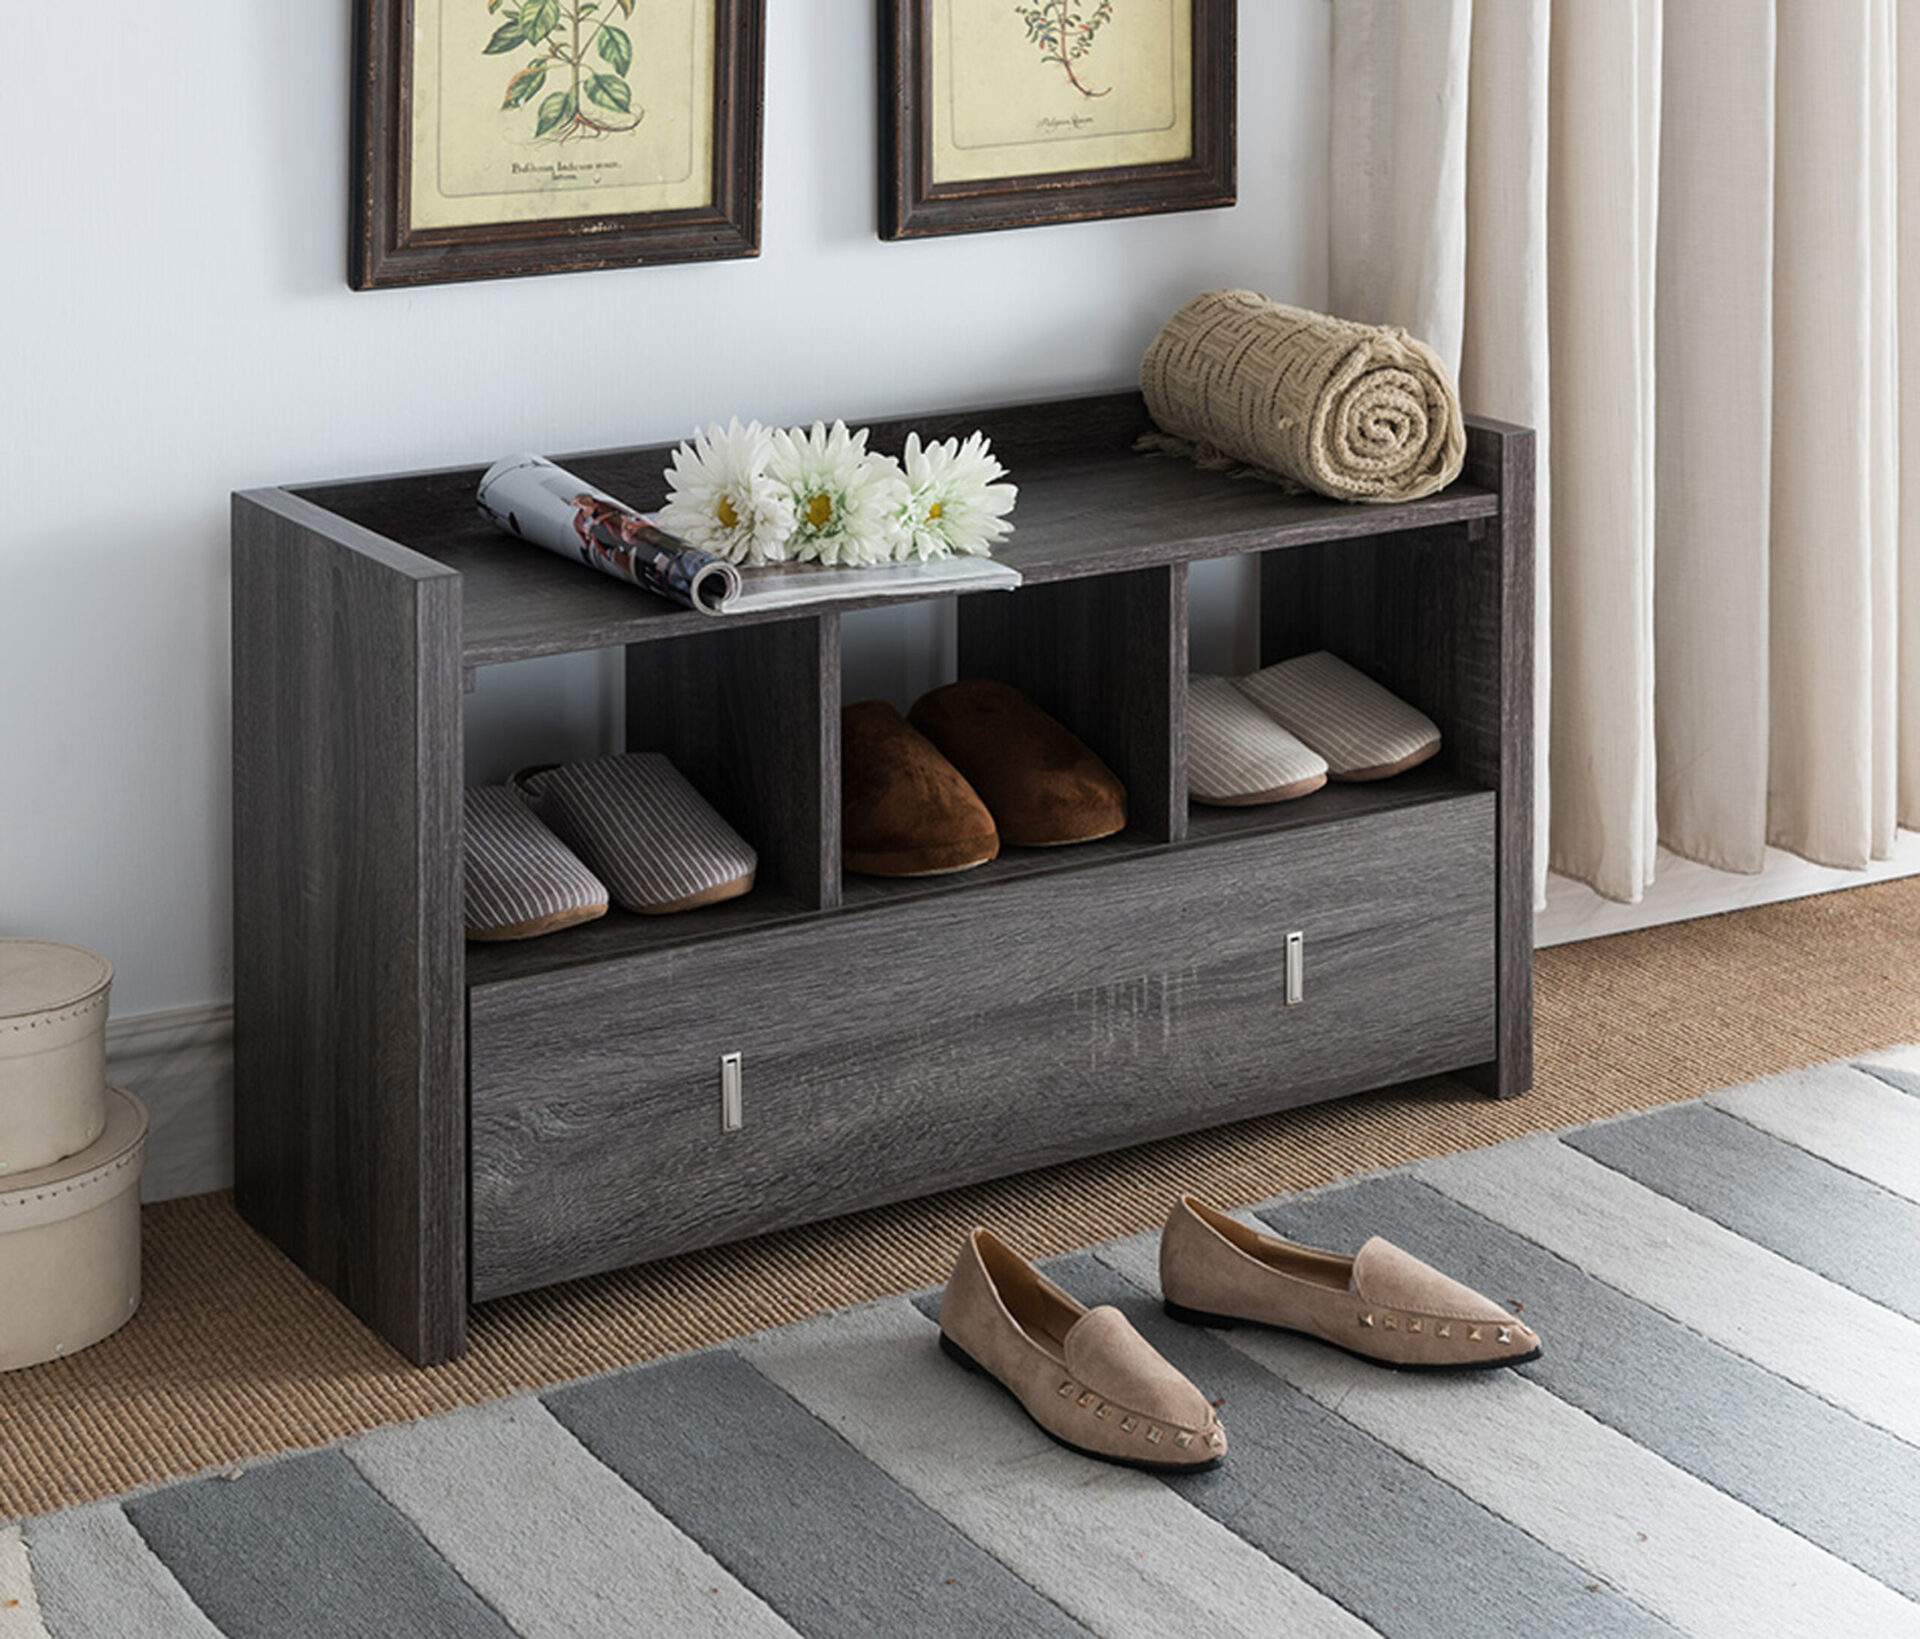 Shoe Storage Bench for Arranging the Shoes